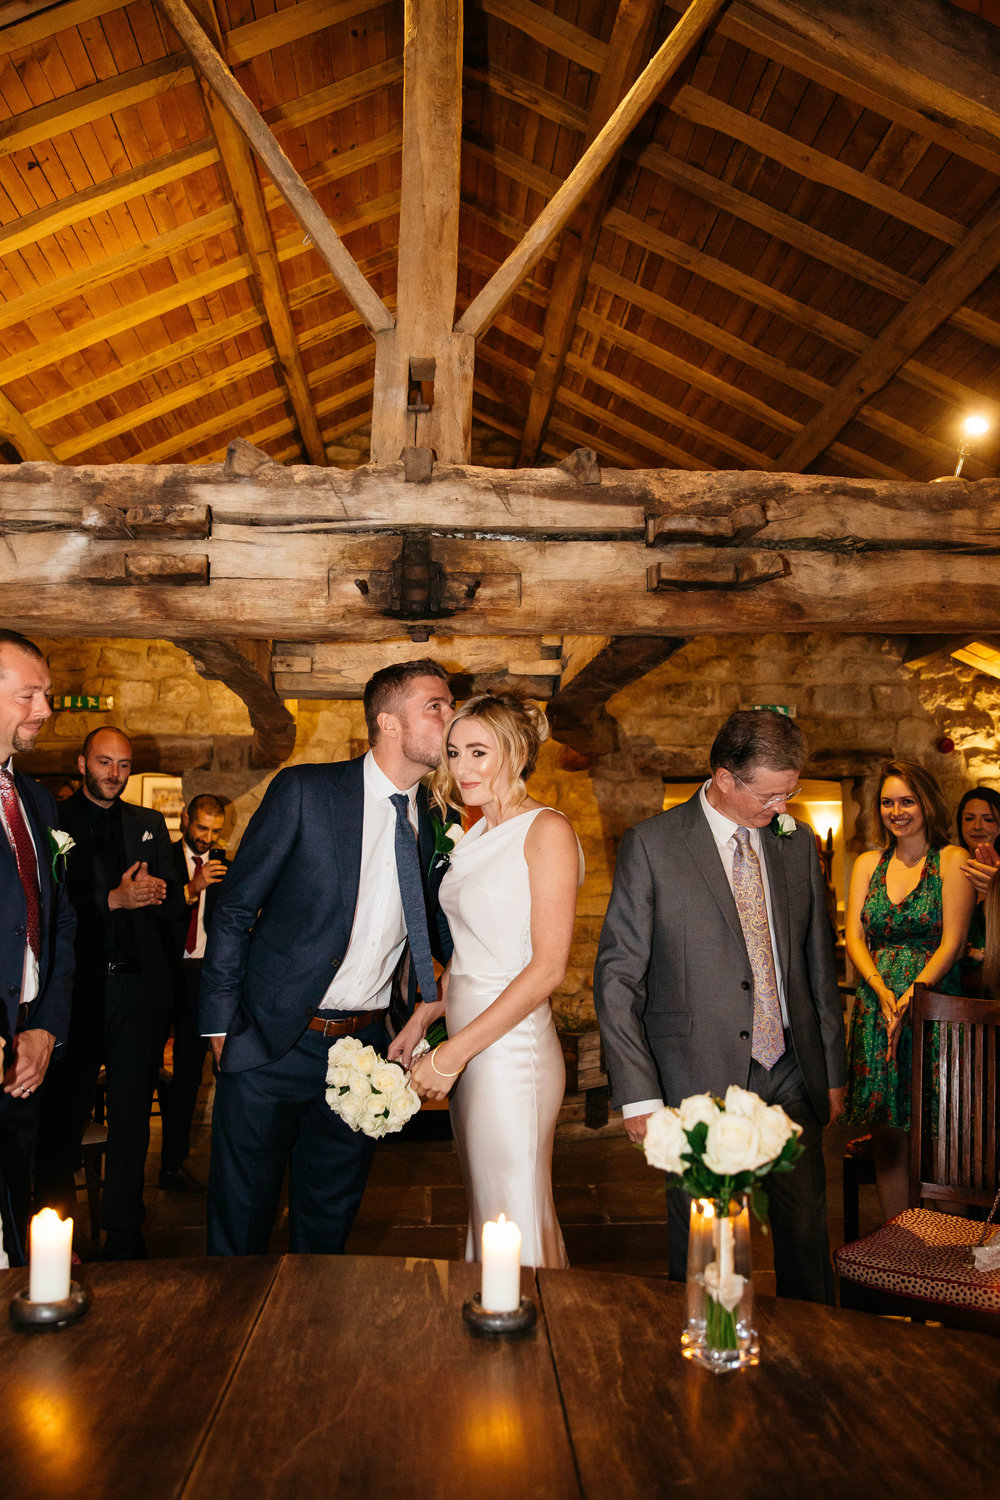 Wedding ceremony at The Star Inn Harome Yorkshire Wedding Photography